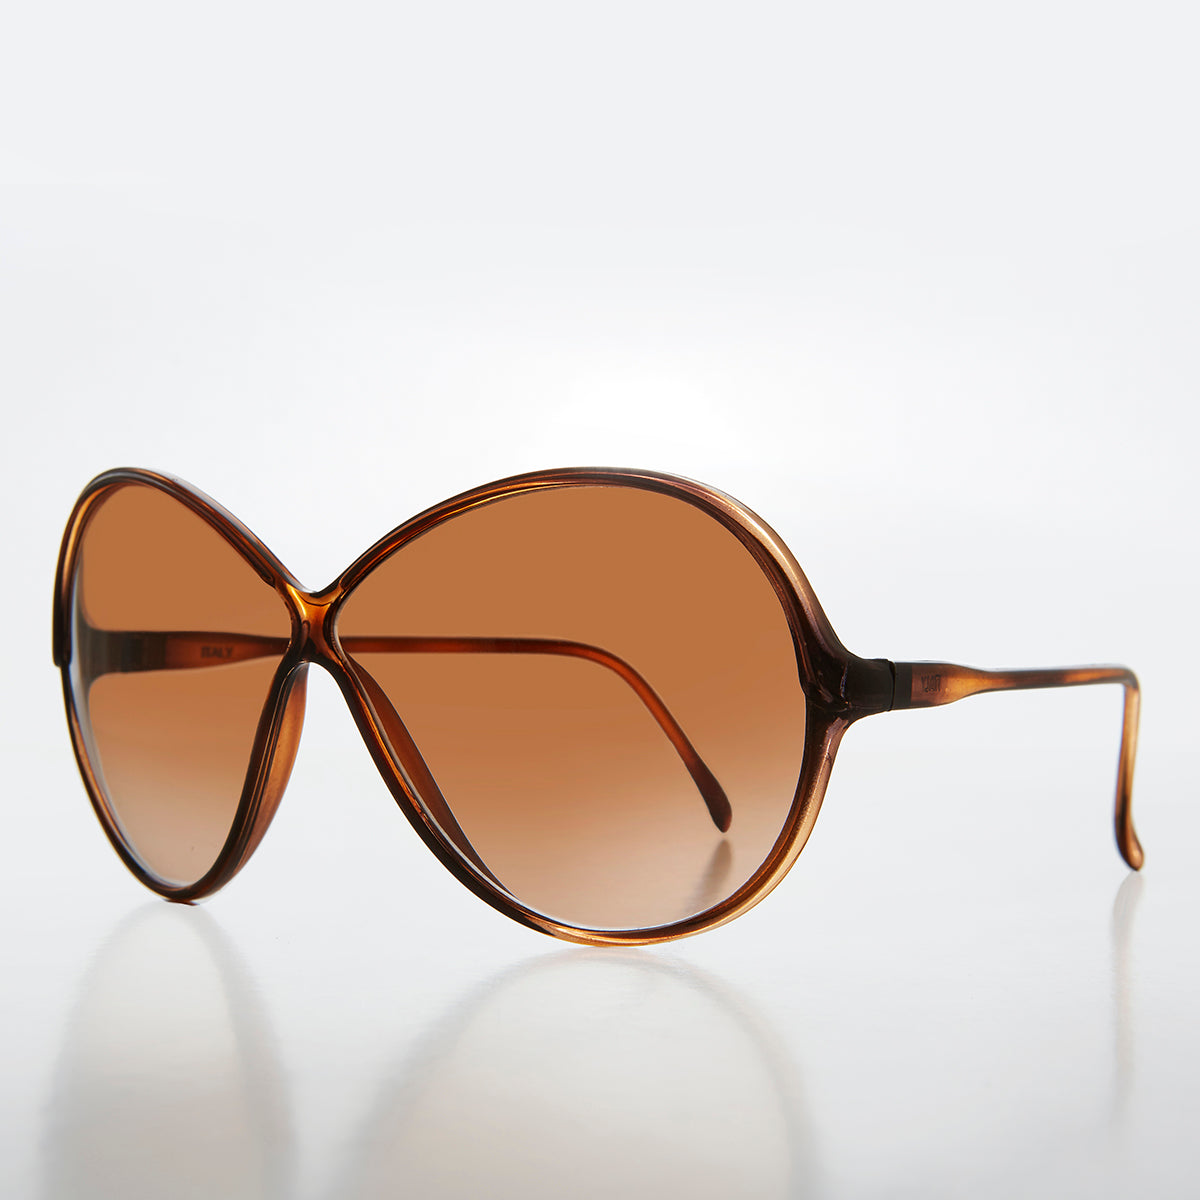 Cris Cross Bug Eye Women's Vintage Sunglass - Sunnie